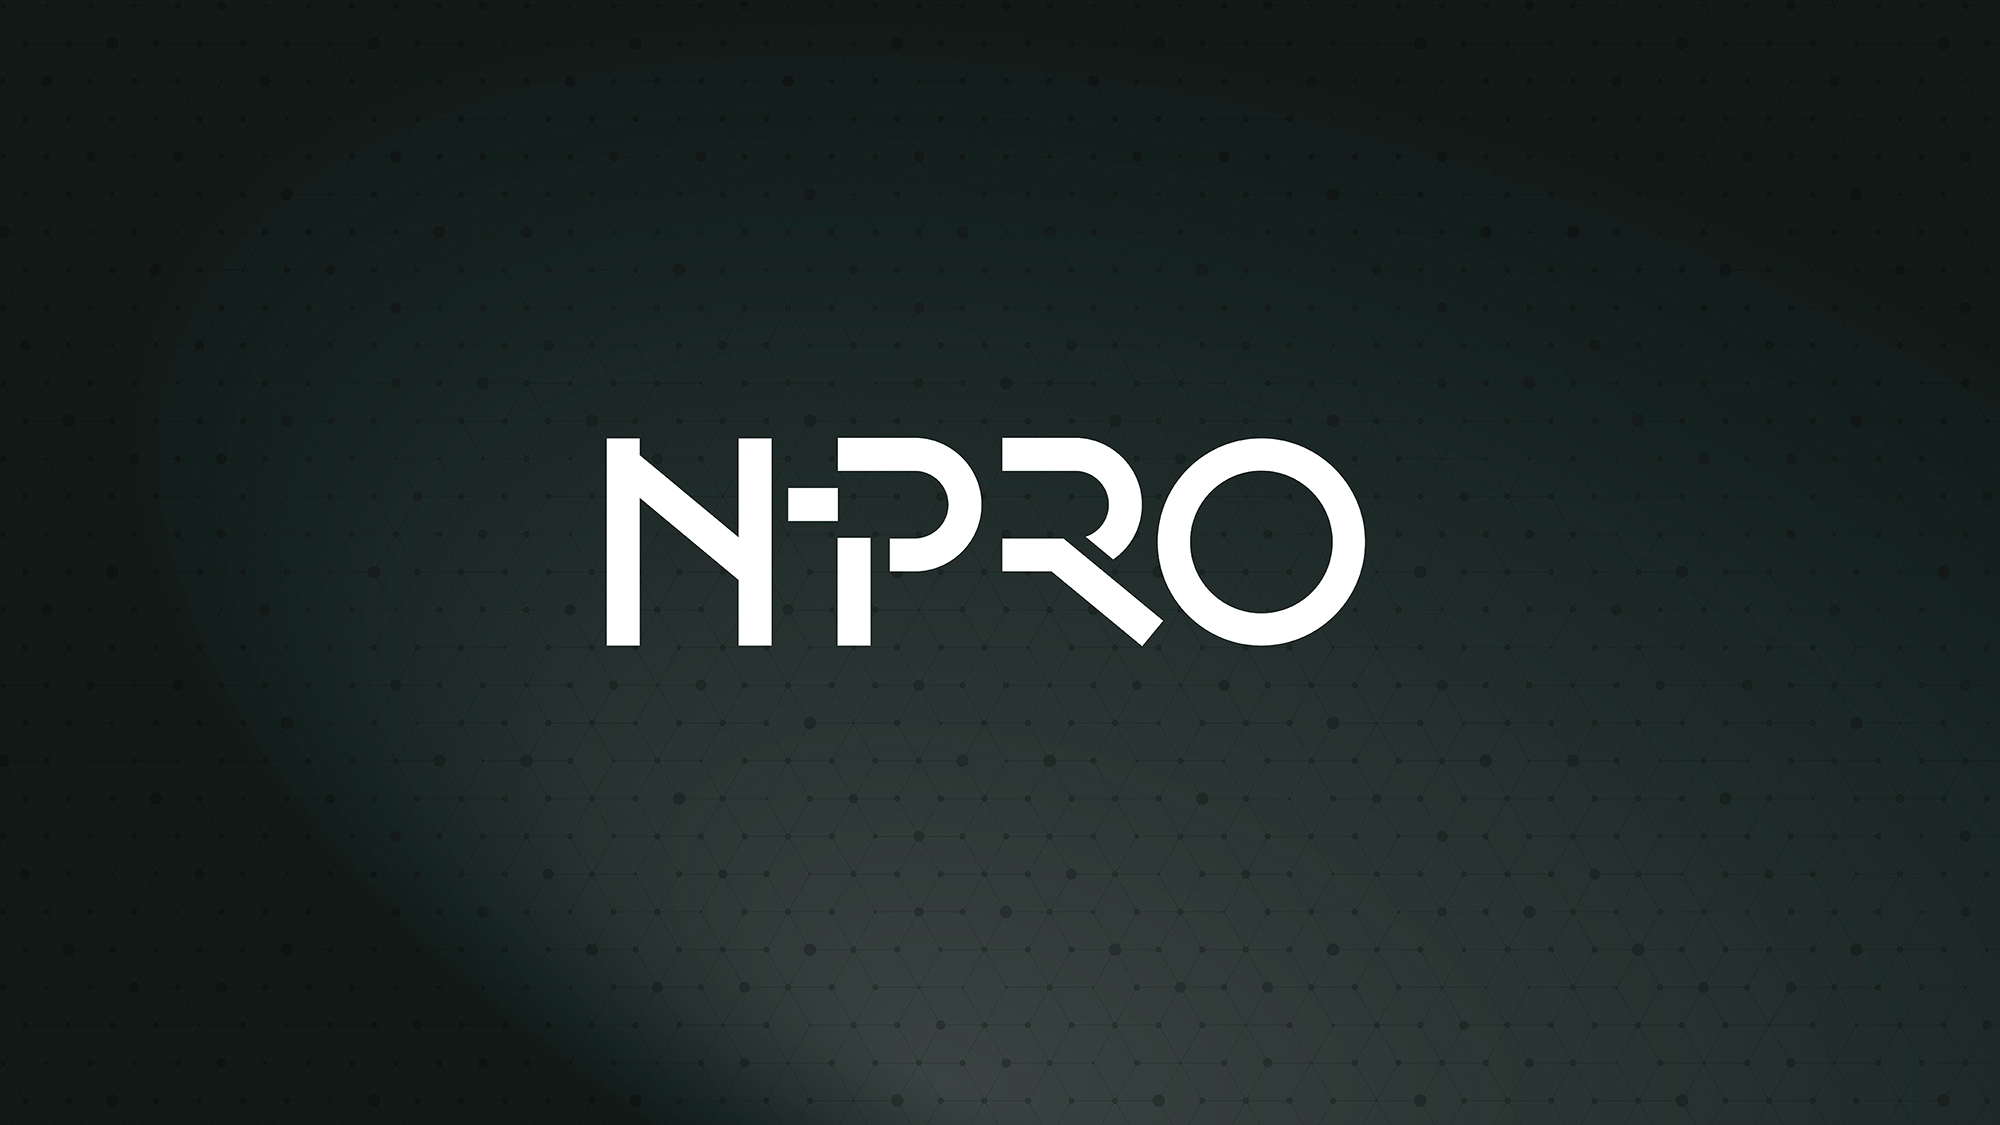 Cover image: N-Pro